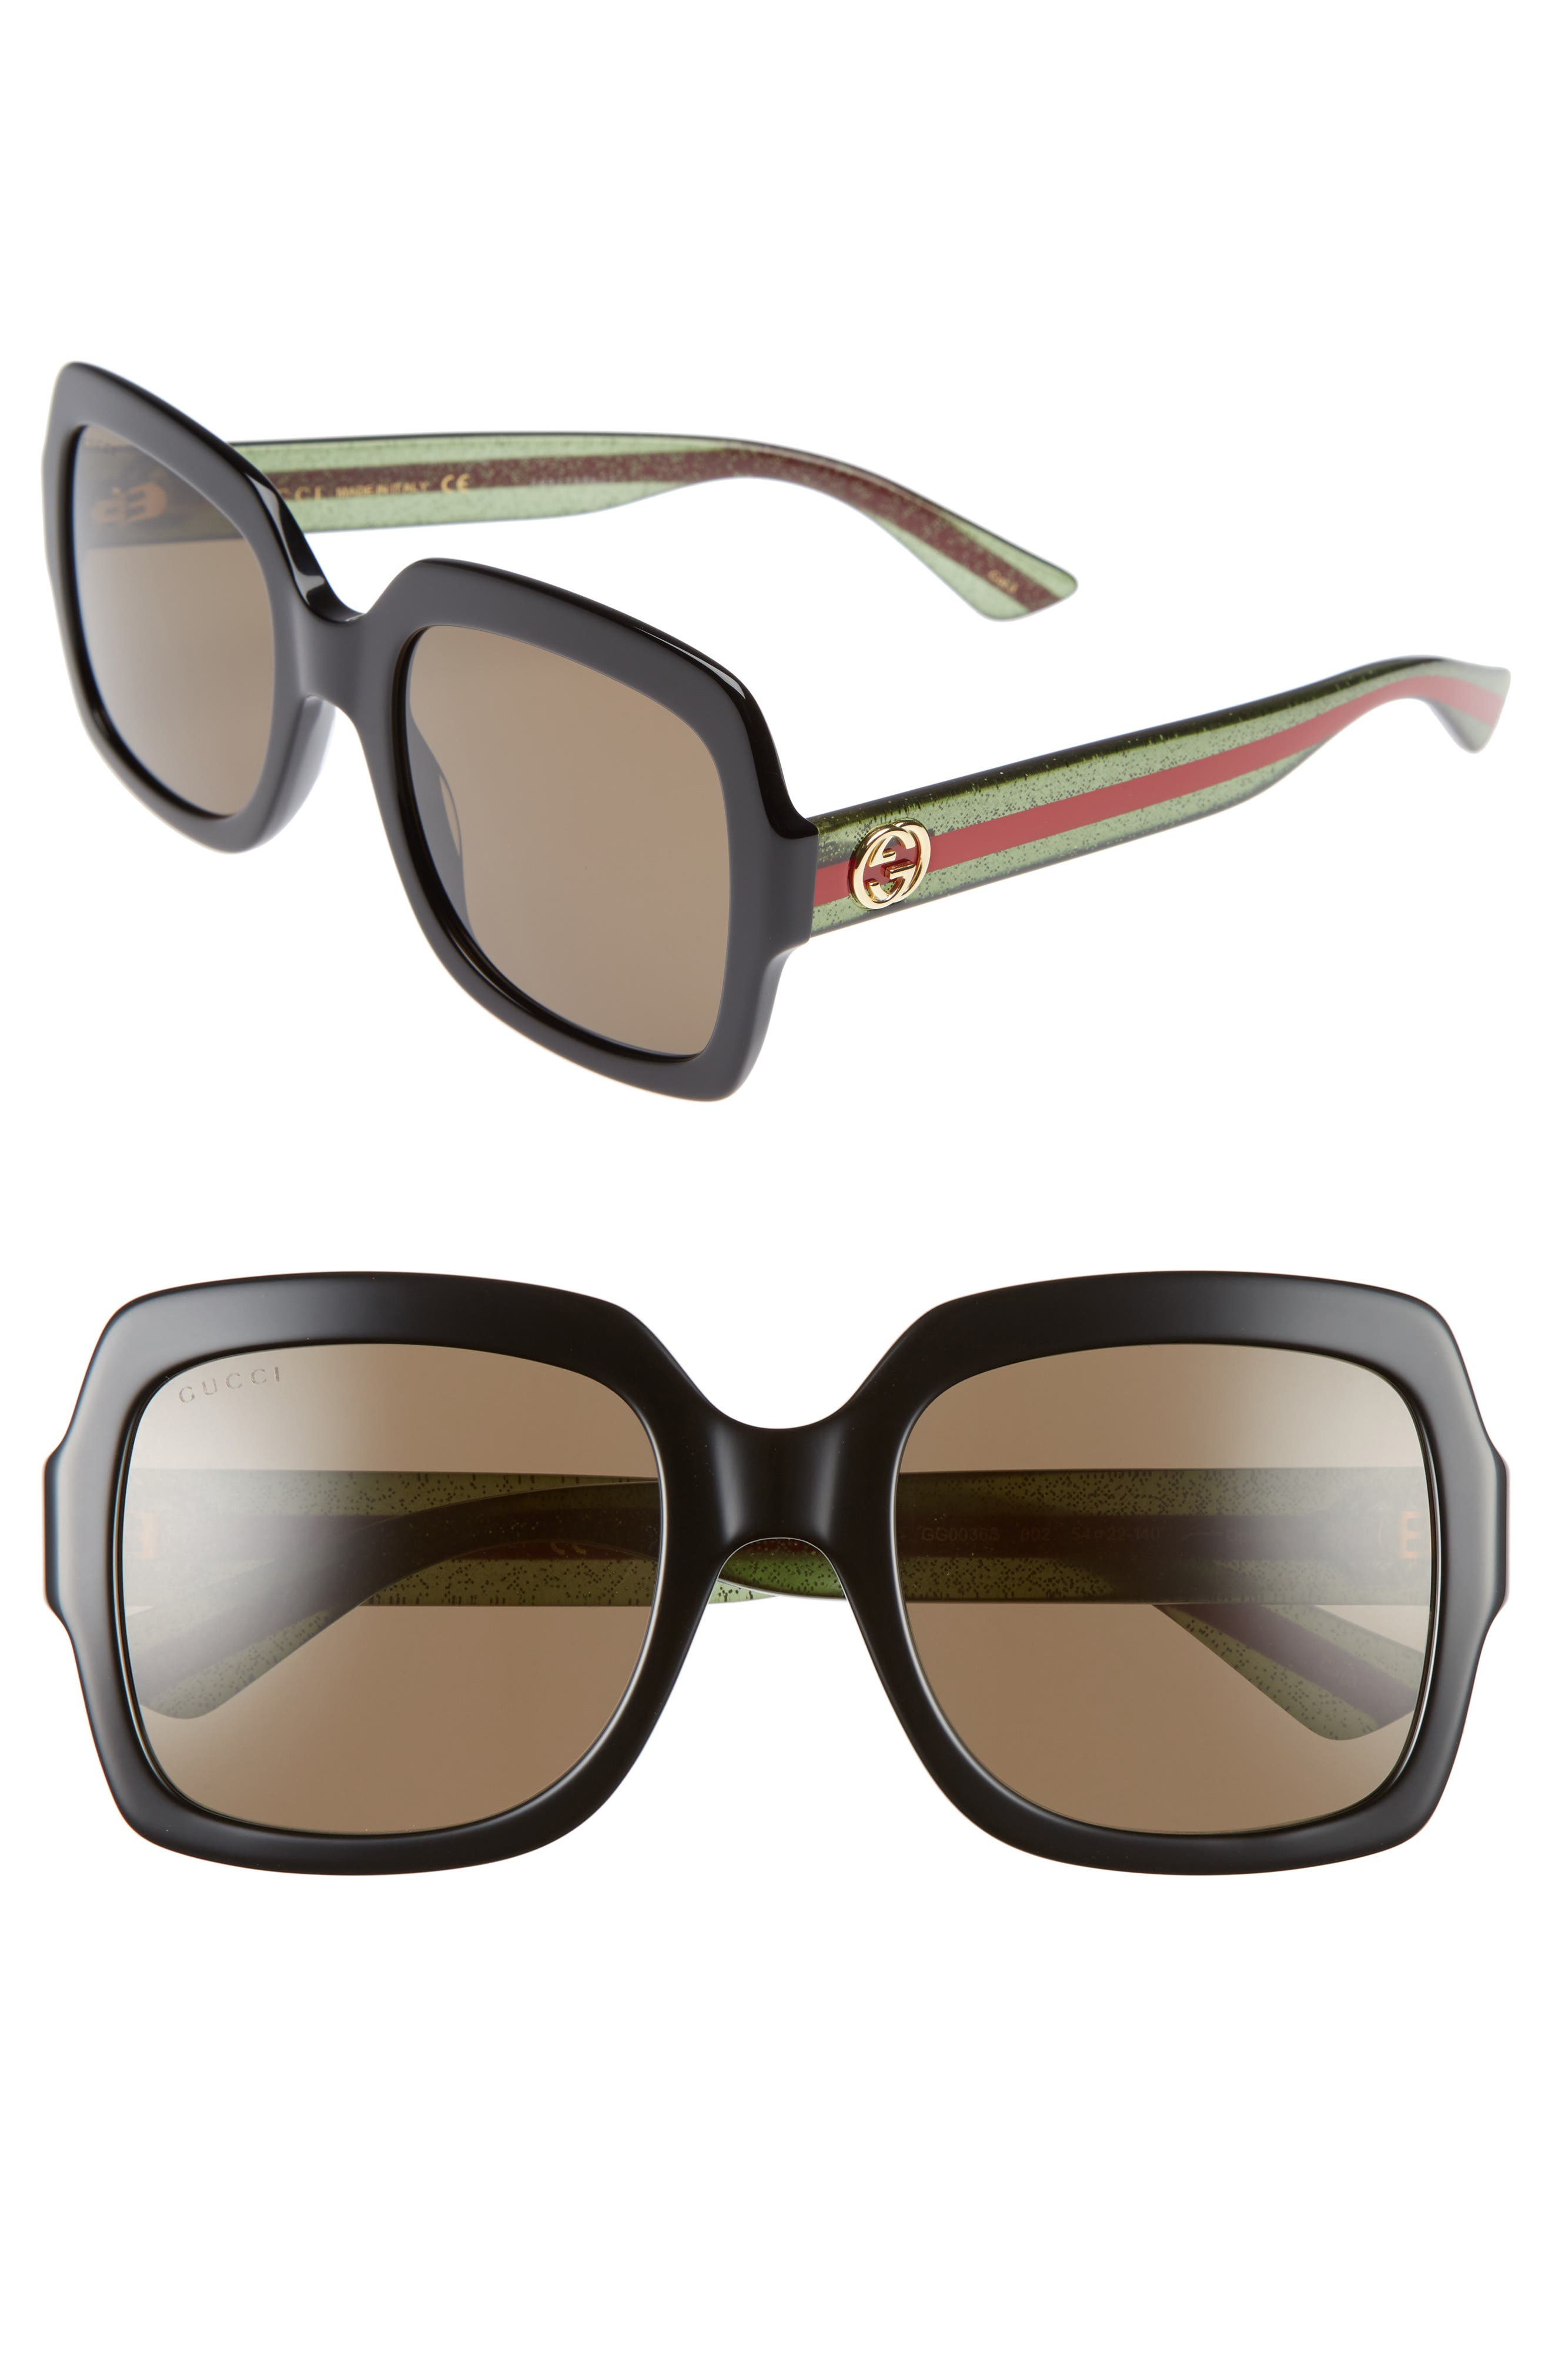 54mm Square Sunglasses,                         Main,                         color, Black/ Brown